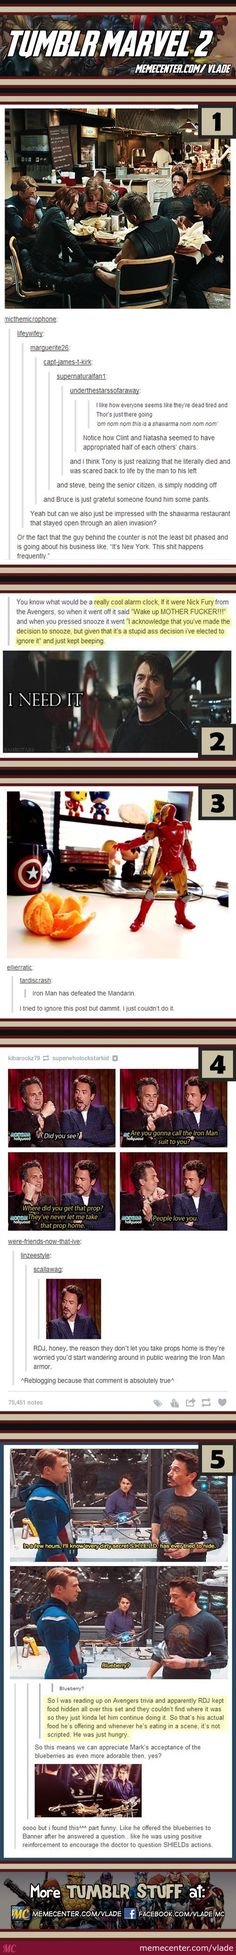 Marvel Tumblr 2 Memes. Best Collection of Funny Marvel Tumblr 6 Pictures